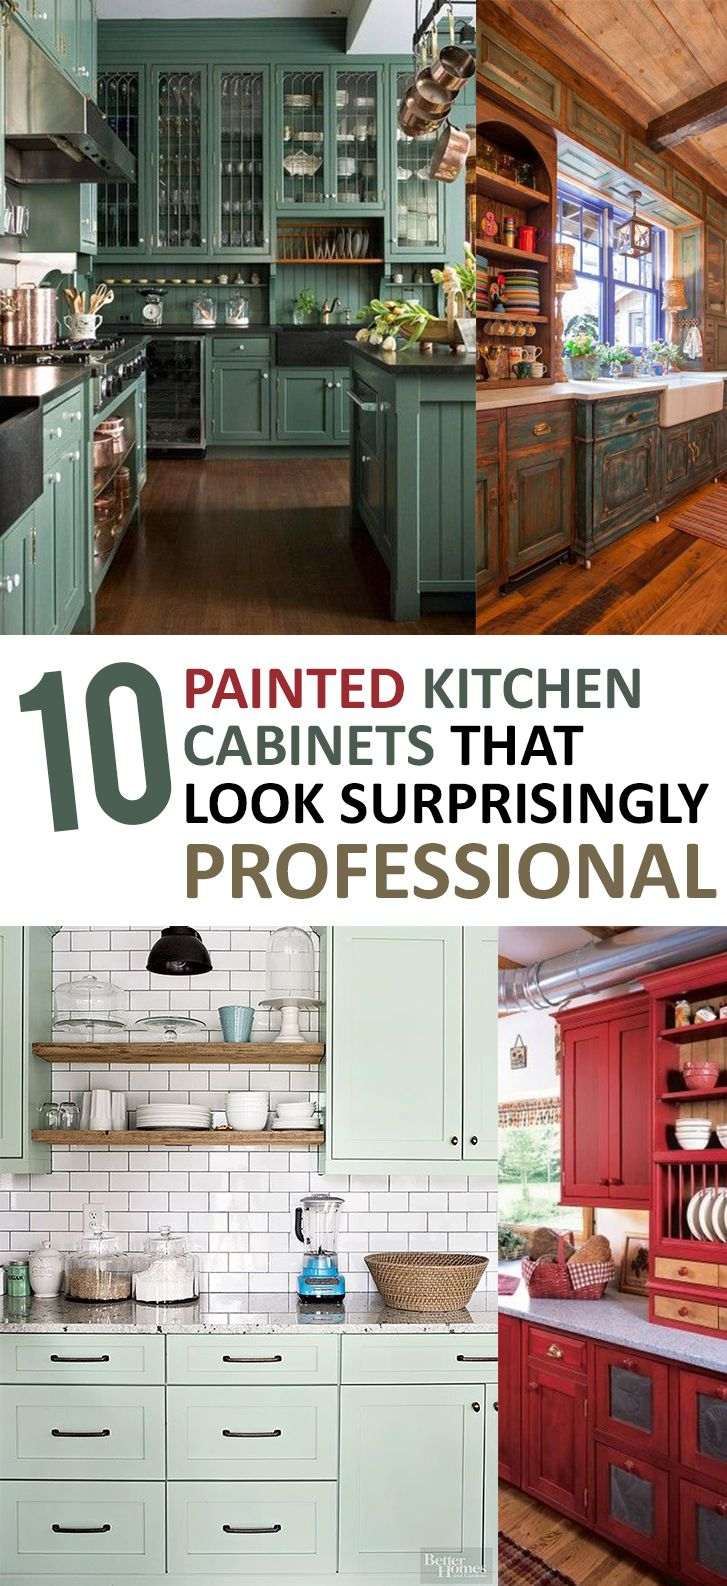 1Diy, diy home projects, home décor, home, dream home, kitchen cabinets, kitchen hacks, beautiful kitchen ideas